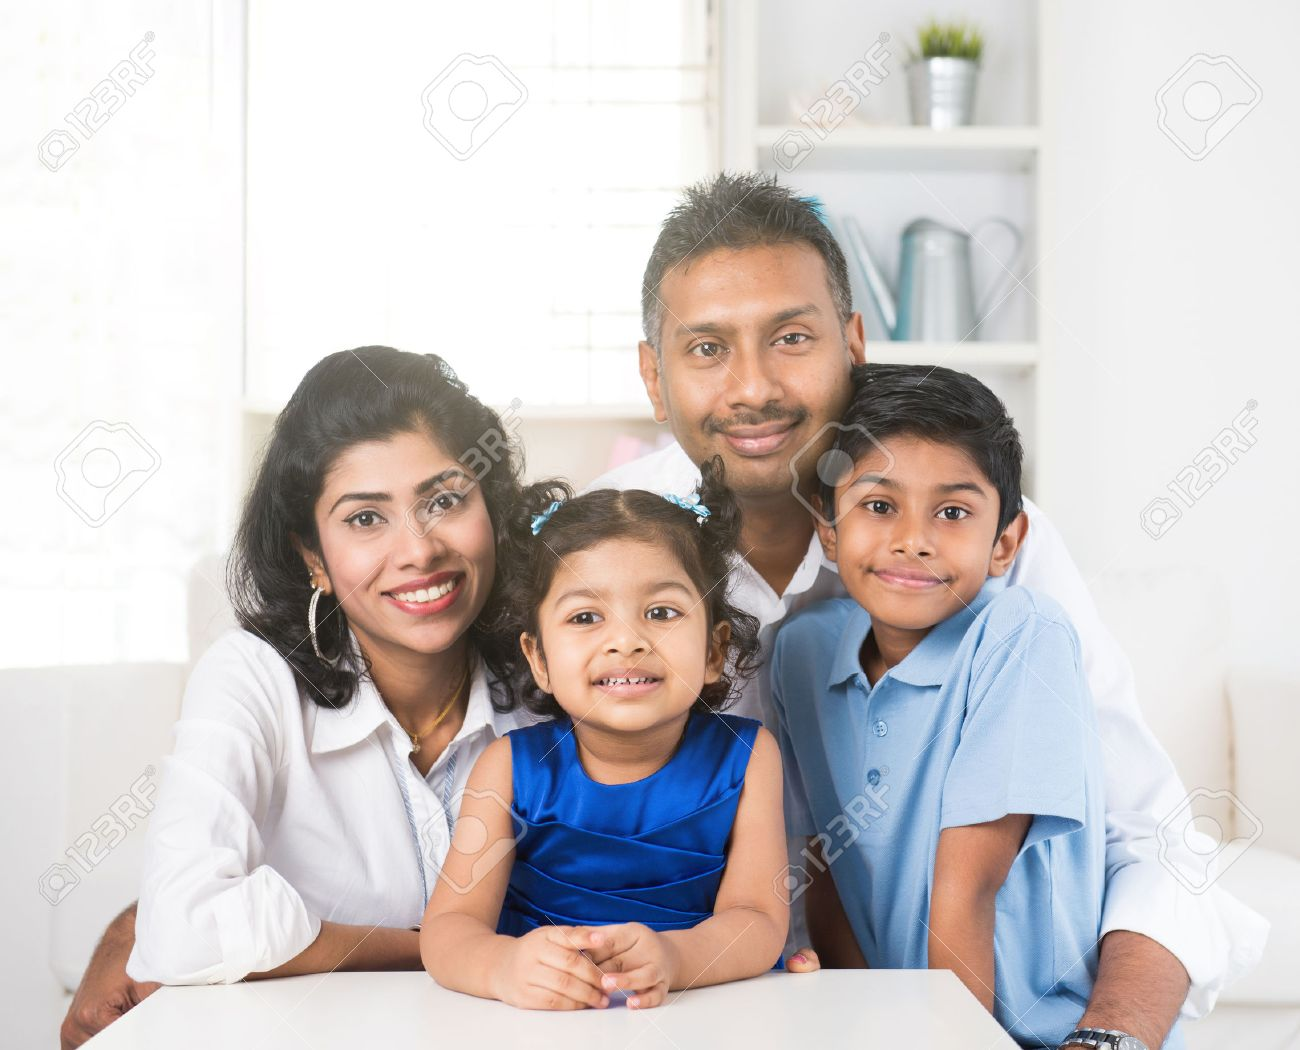 Family Pictures Happy Indian Family Stock Photos Royalty Free Happy Indian Family